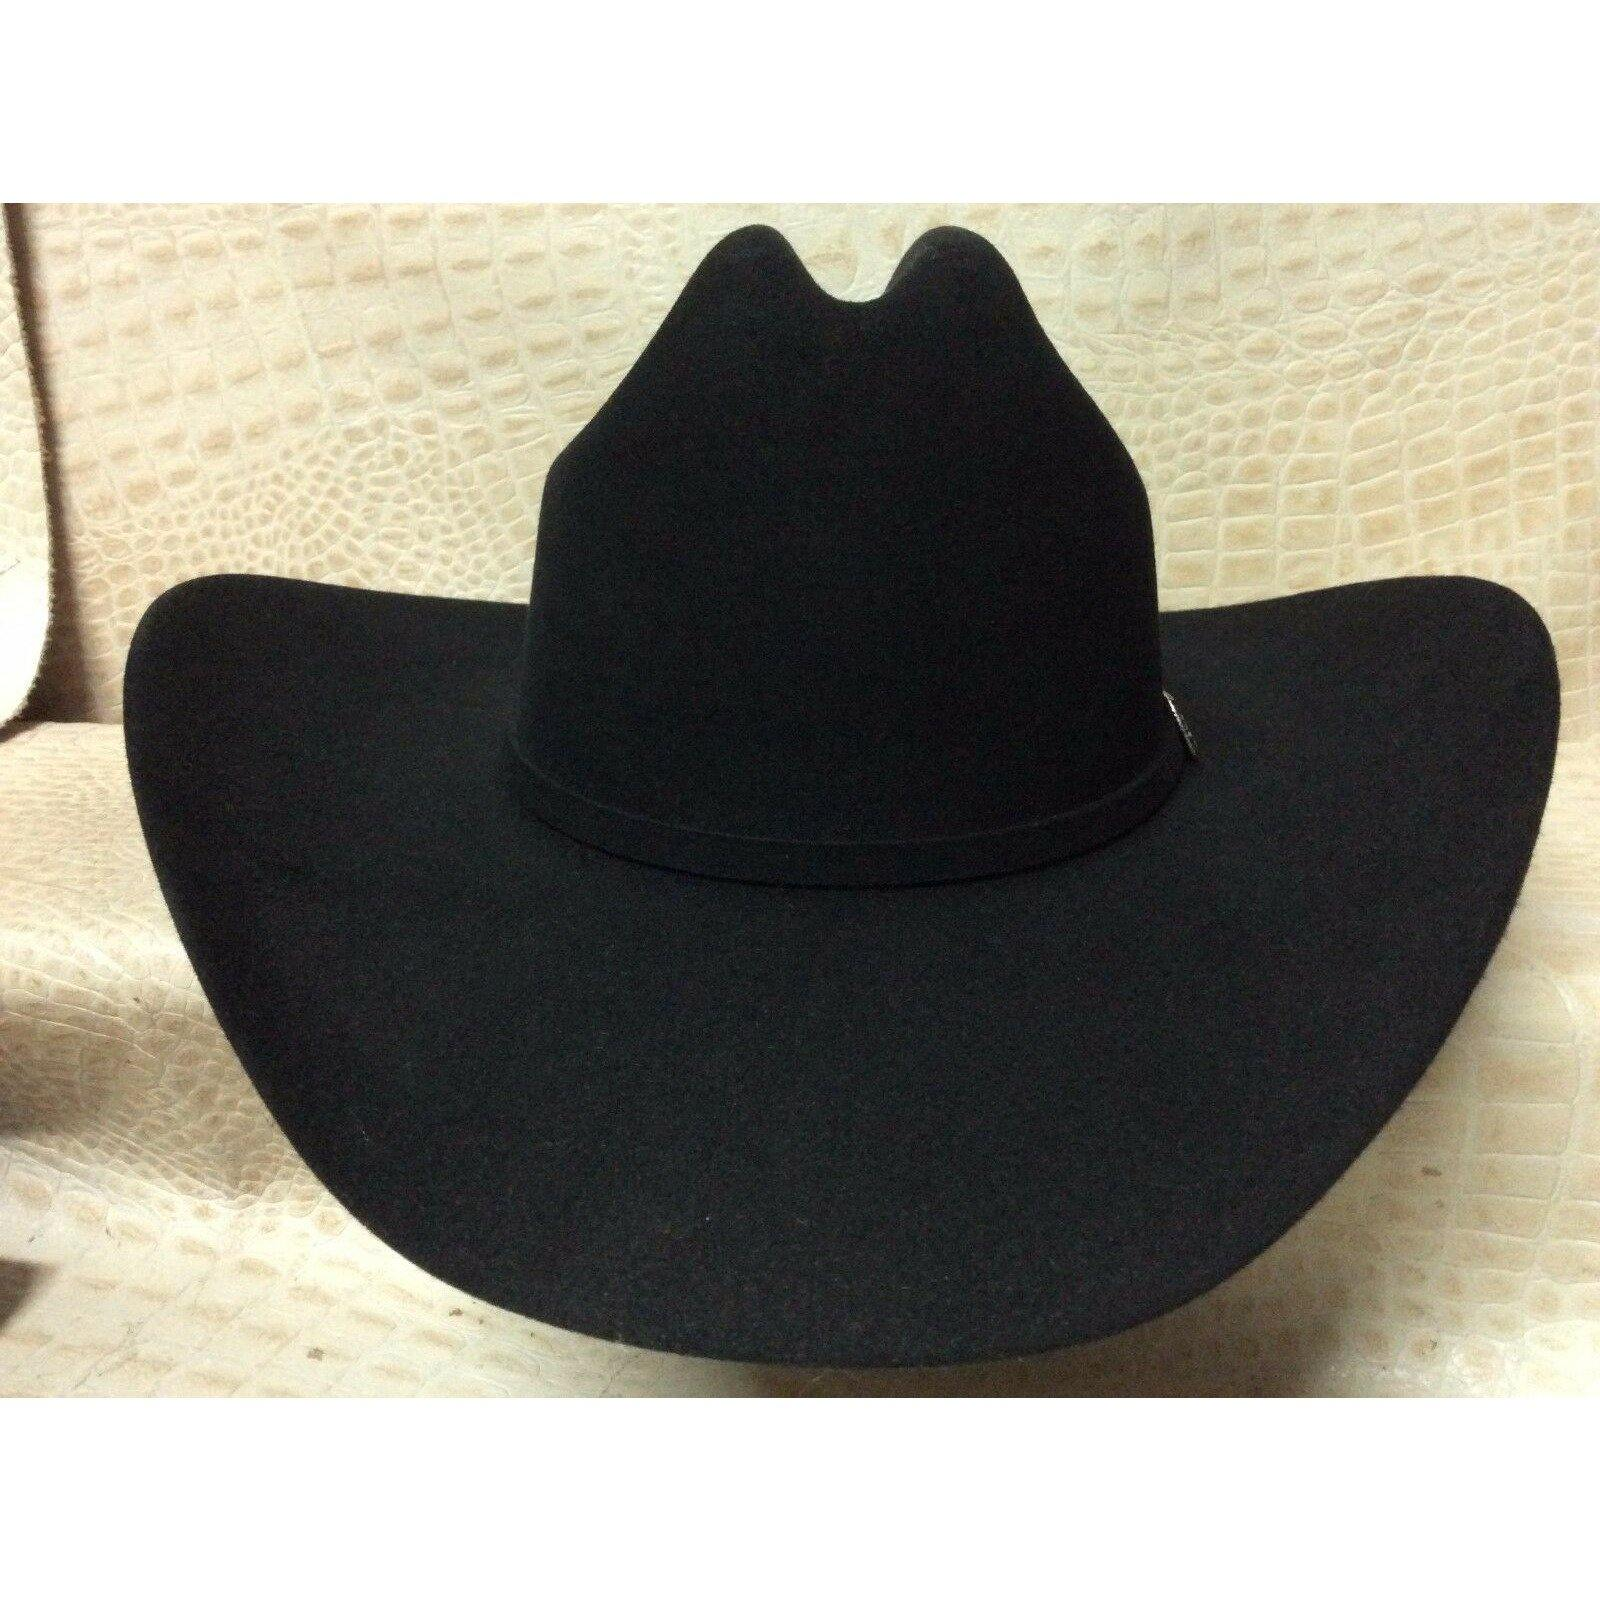 New Stetson Skyline Black 6X Beaver Fur Felt Western Rodeo Riding Cowboy Hat - CWesternwear